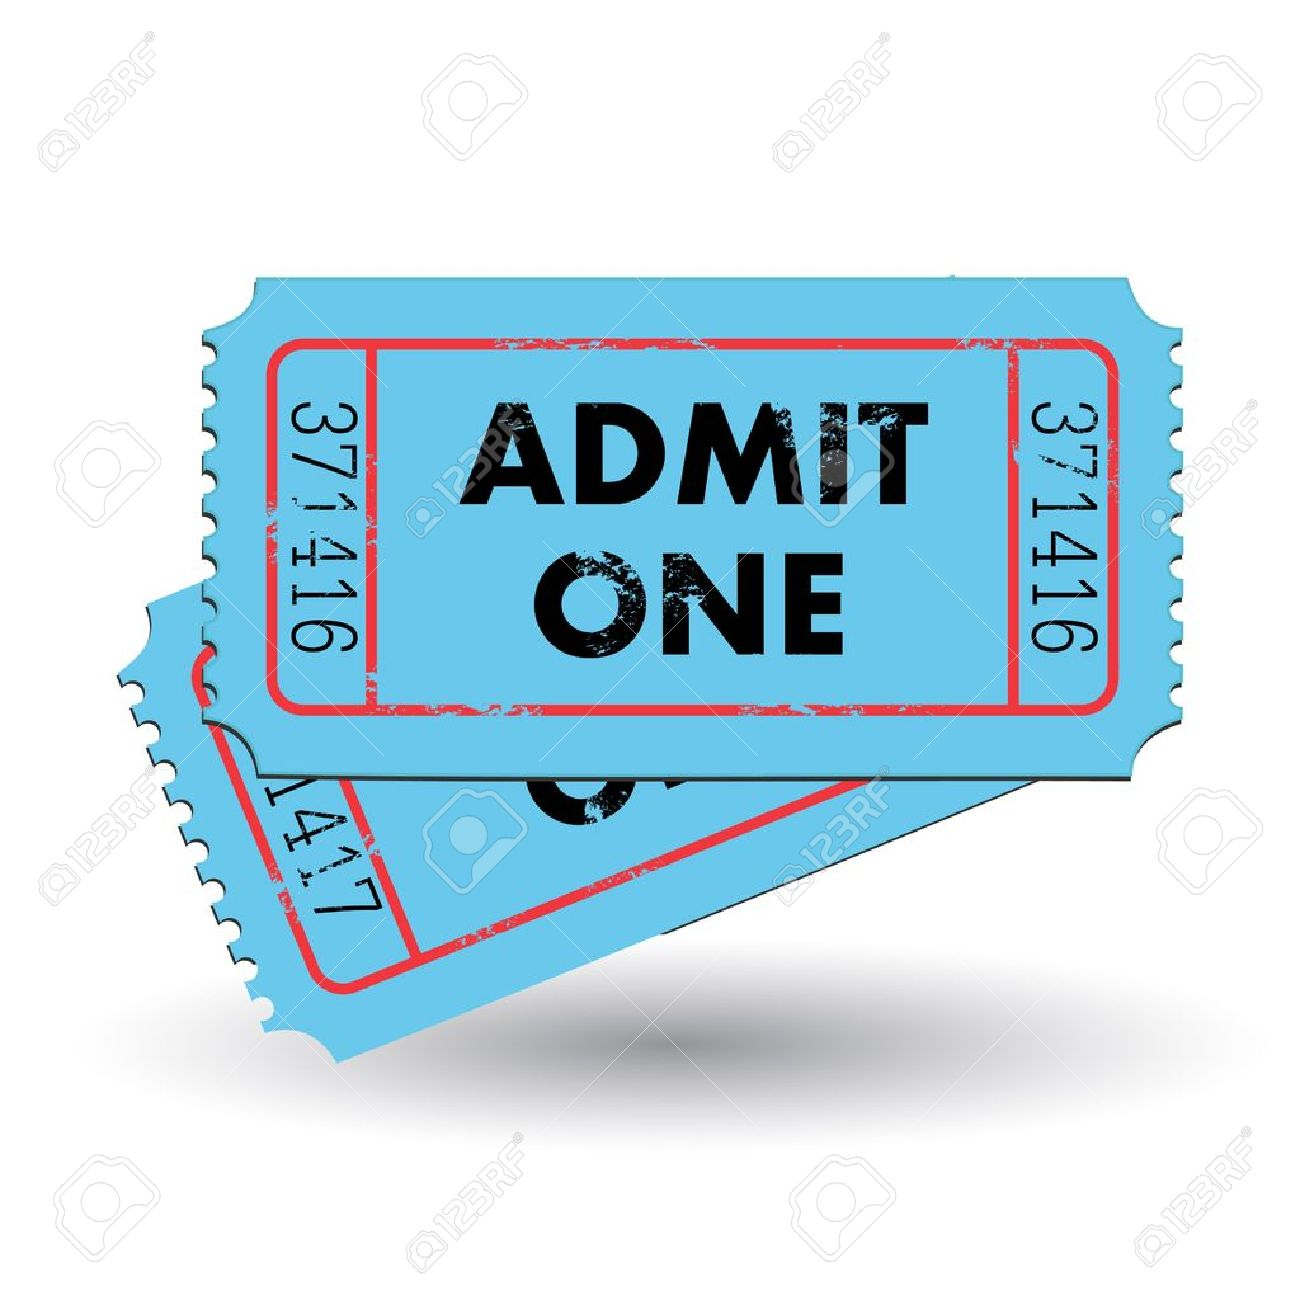 Image of a colorful, vintage admit one ticket isolated on a white background - 12890723